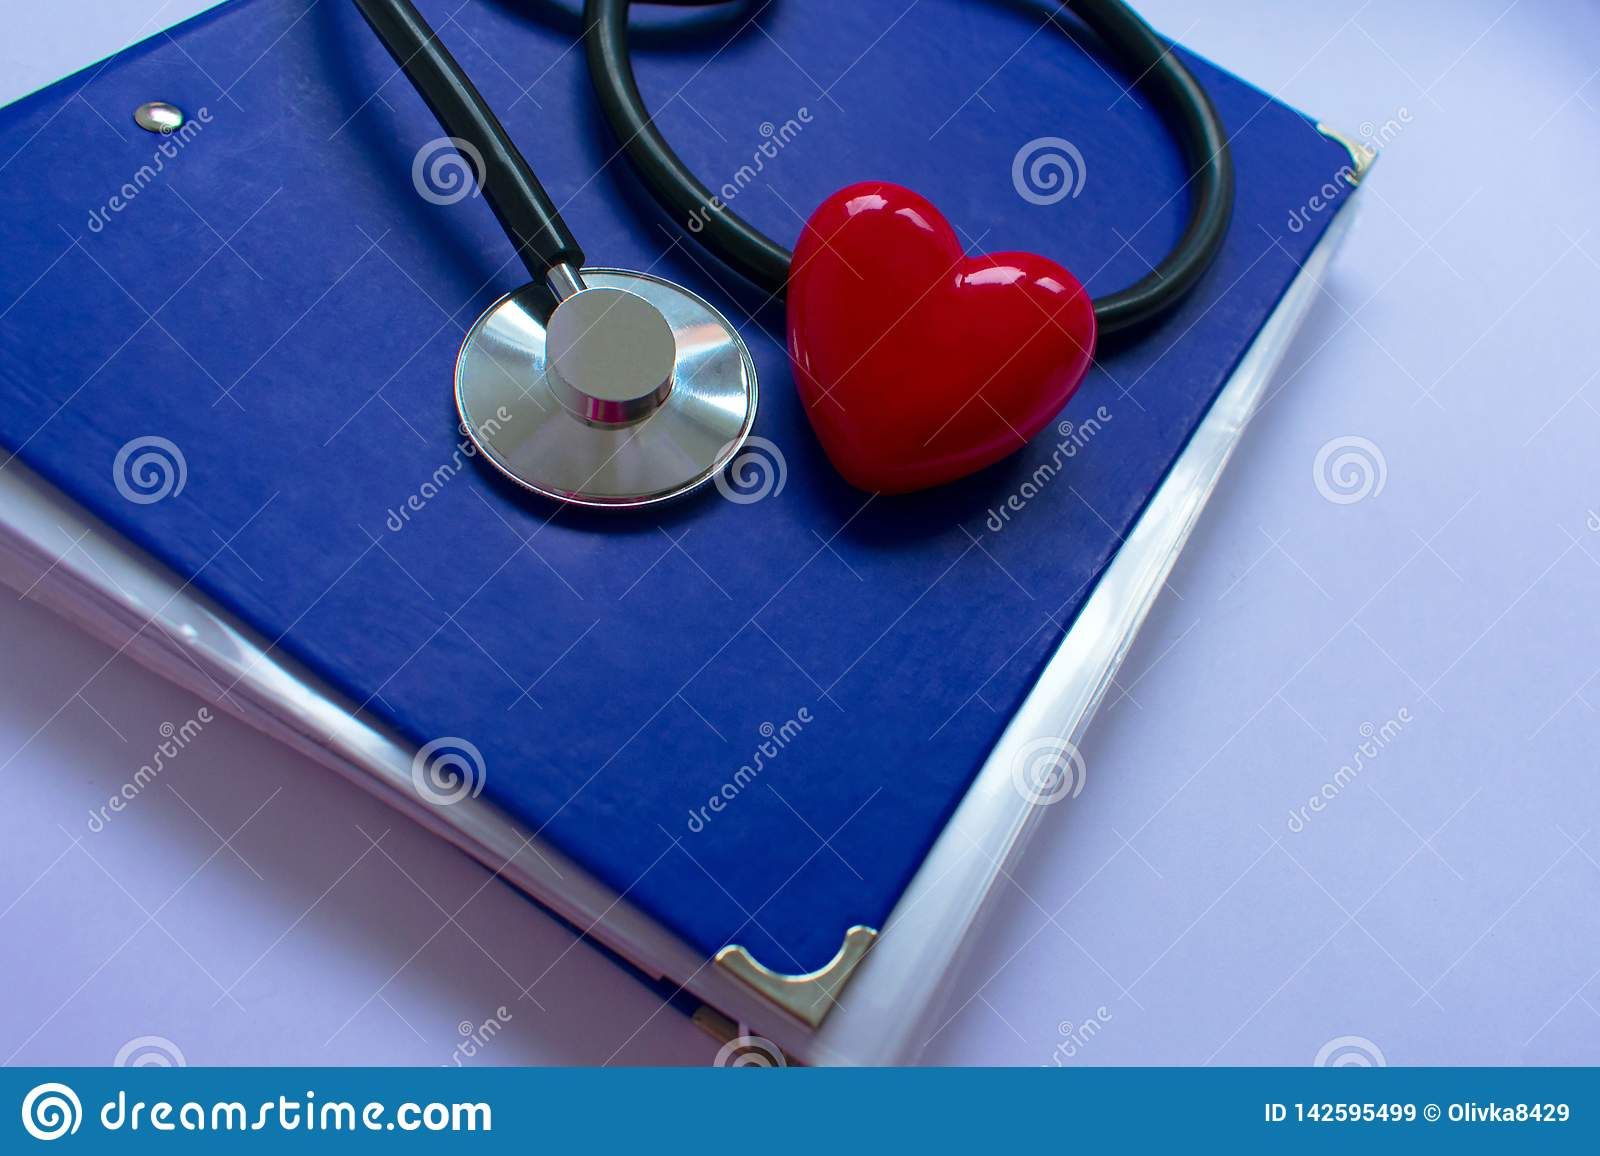 Stethoscope and heartn on black background